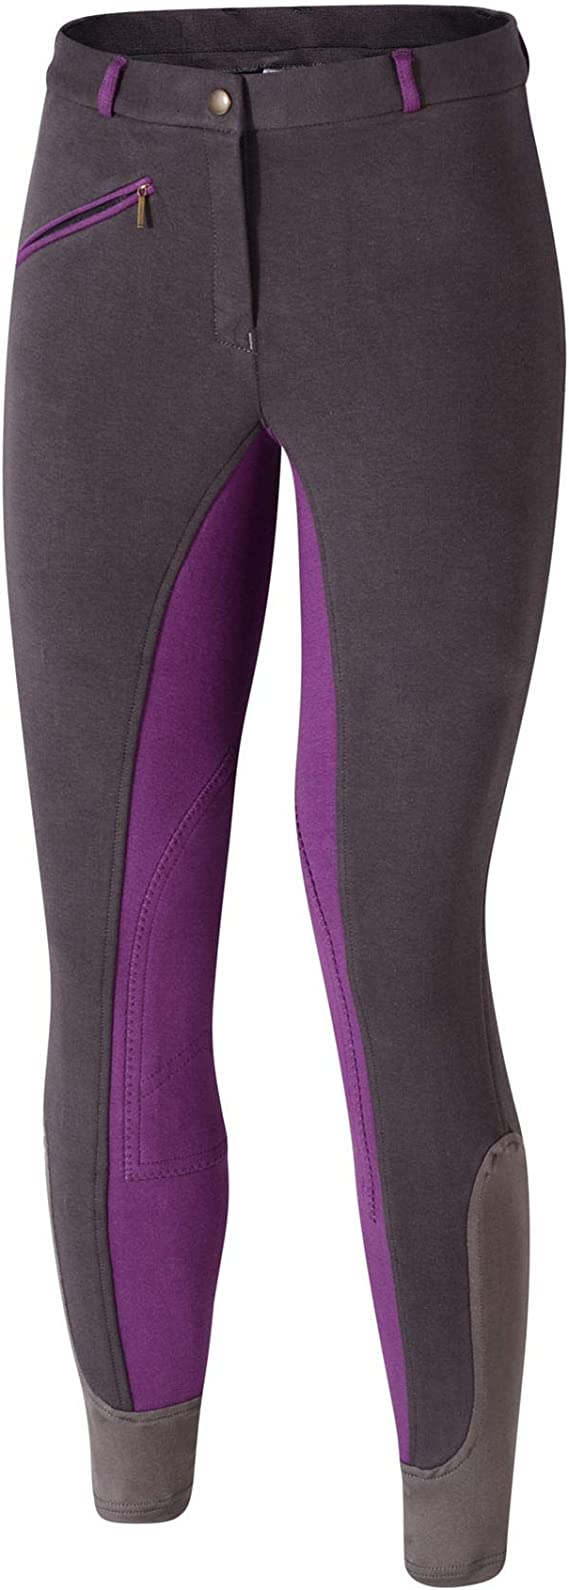 Bow /& Arrow Ladies Children Horse Riding Full Seat Knee Patch Riding Breeches